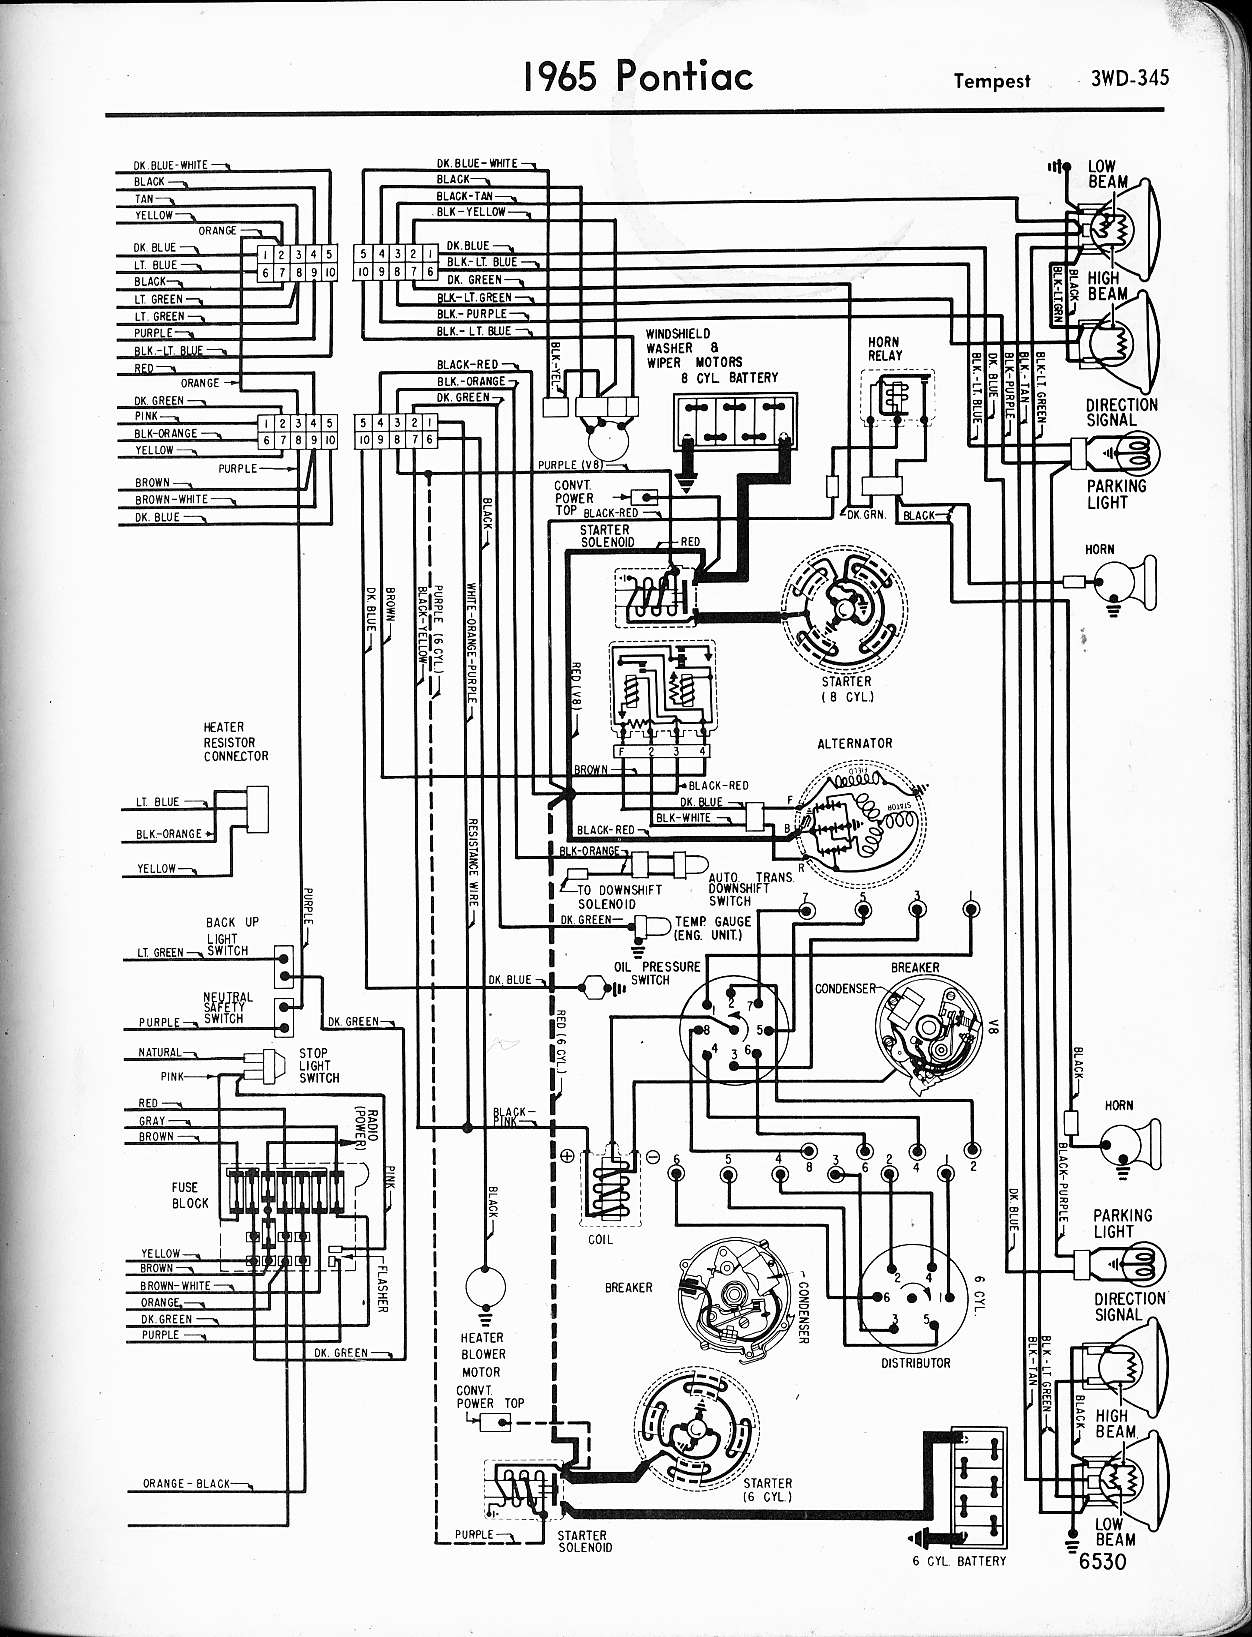 69 Roadrunner Wiring Diagram Worksheet And 1982 Camaro Turn Signal 1969 Gto Electrical Schematics Rh Culturetearoom Com Harness Plymouth Road Runner